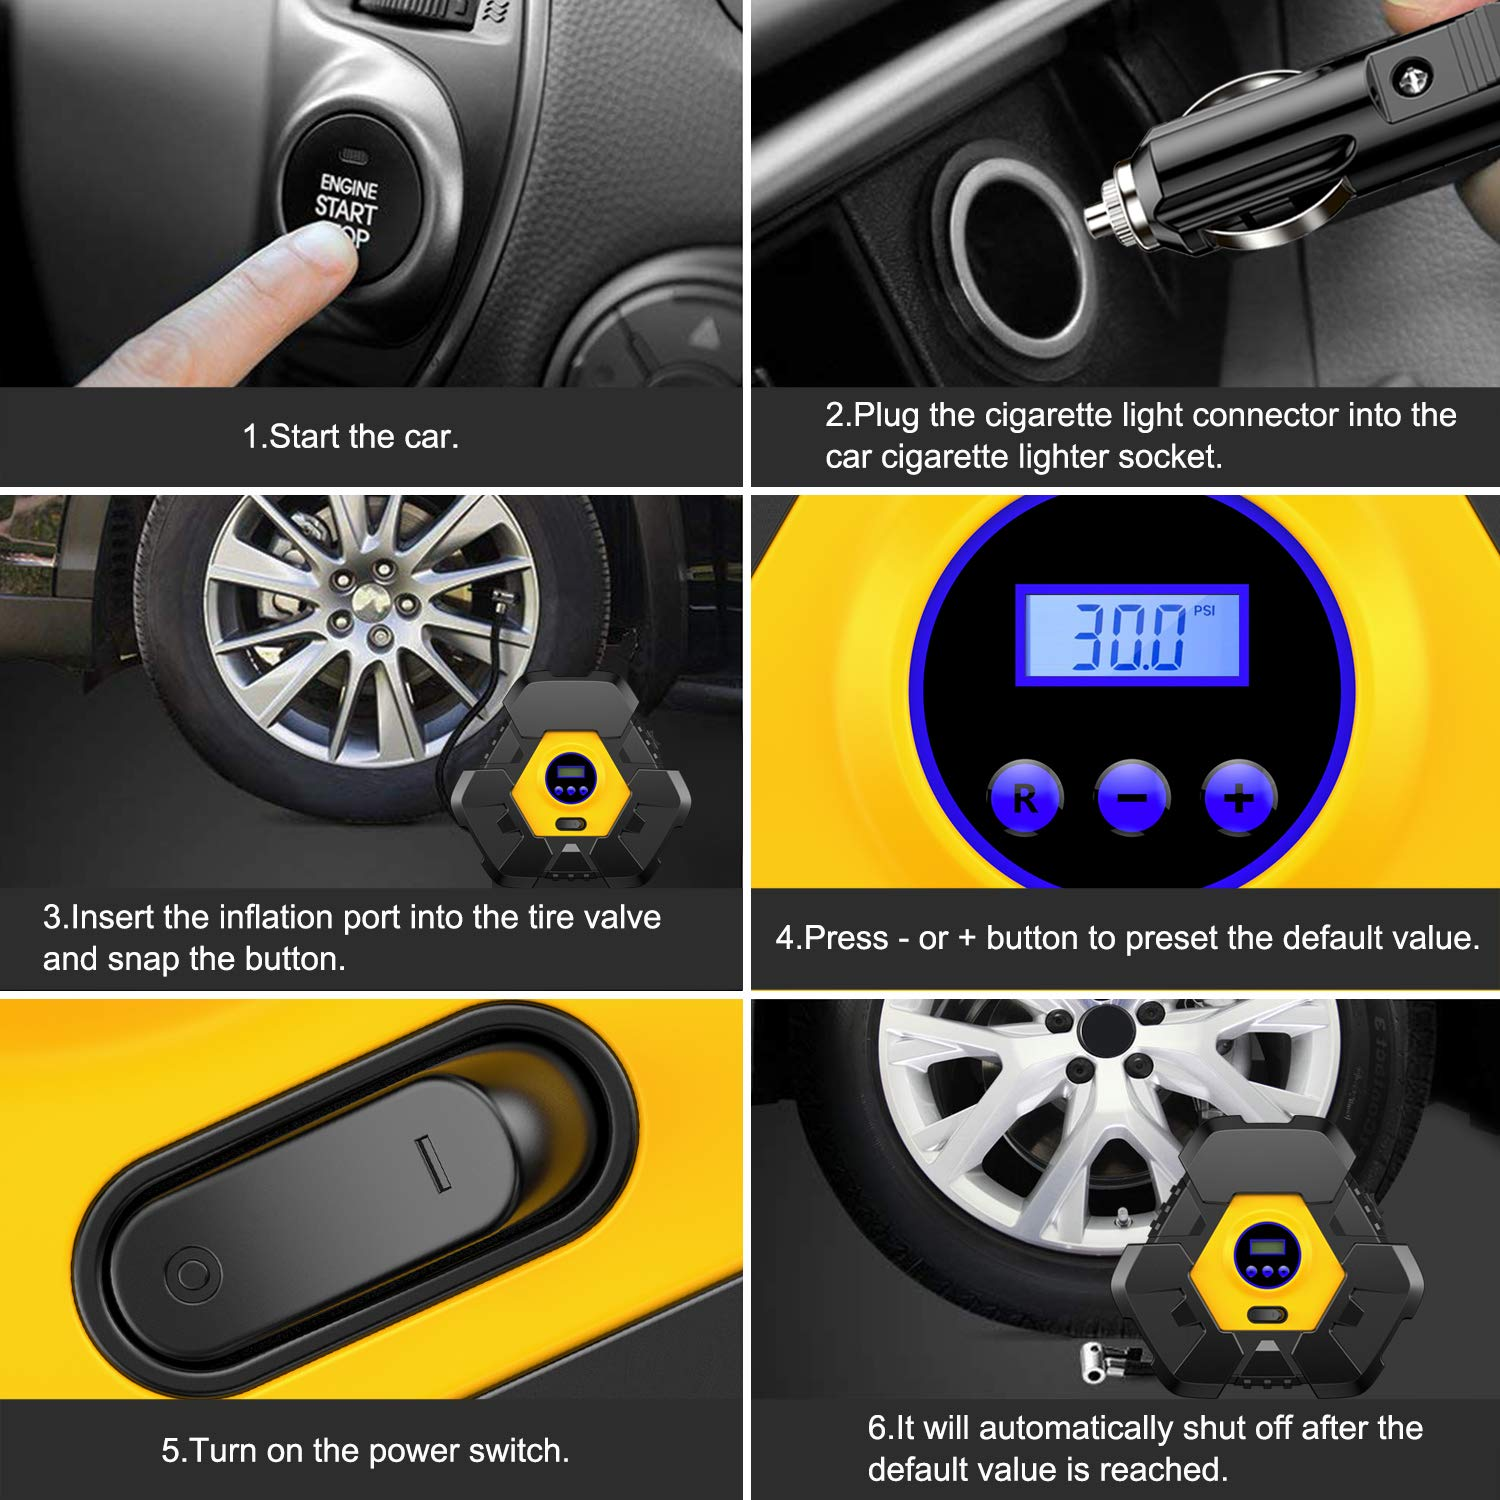 CICMOD Car Tyre Inflator 150PSI Auto Air Compressor Pump Portable 12V Digital Display Tyre Pressure Gauge for Truck SUV